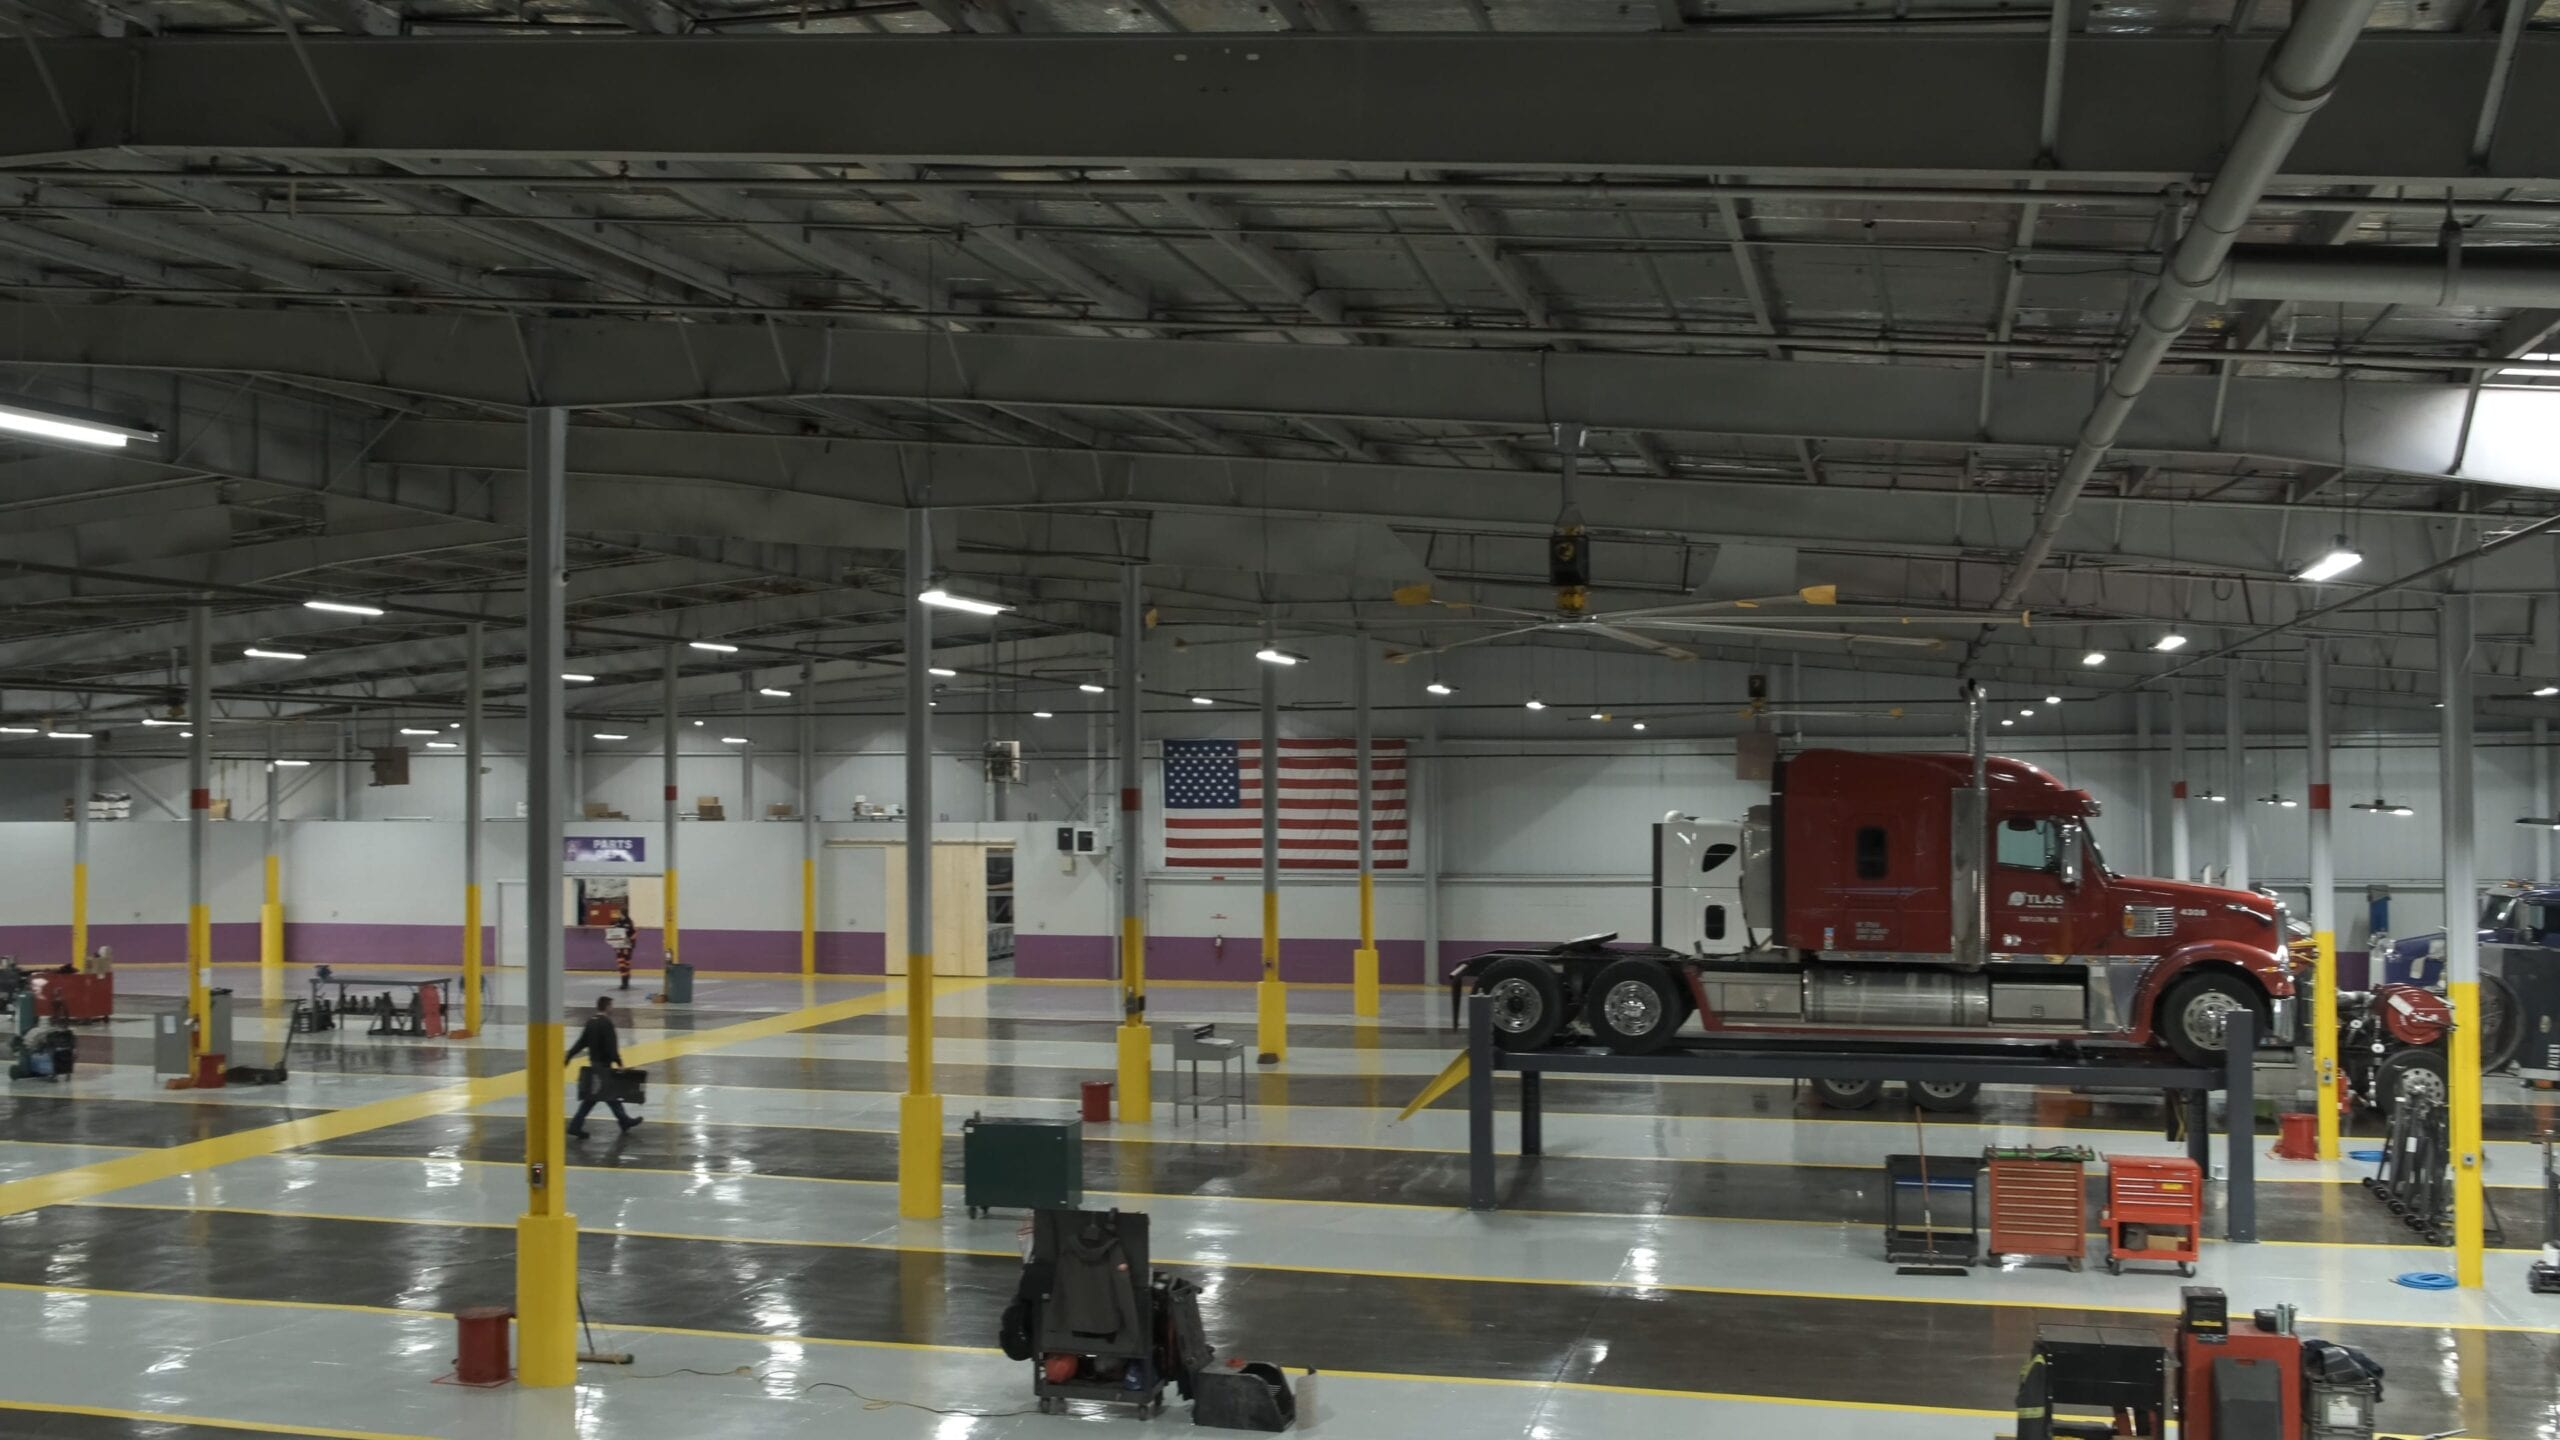 Interior of large semi truck repair shop with truck on a lift and American flag on the wall in the background.